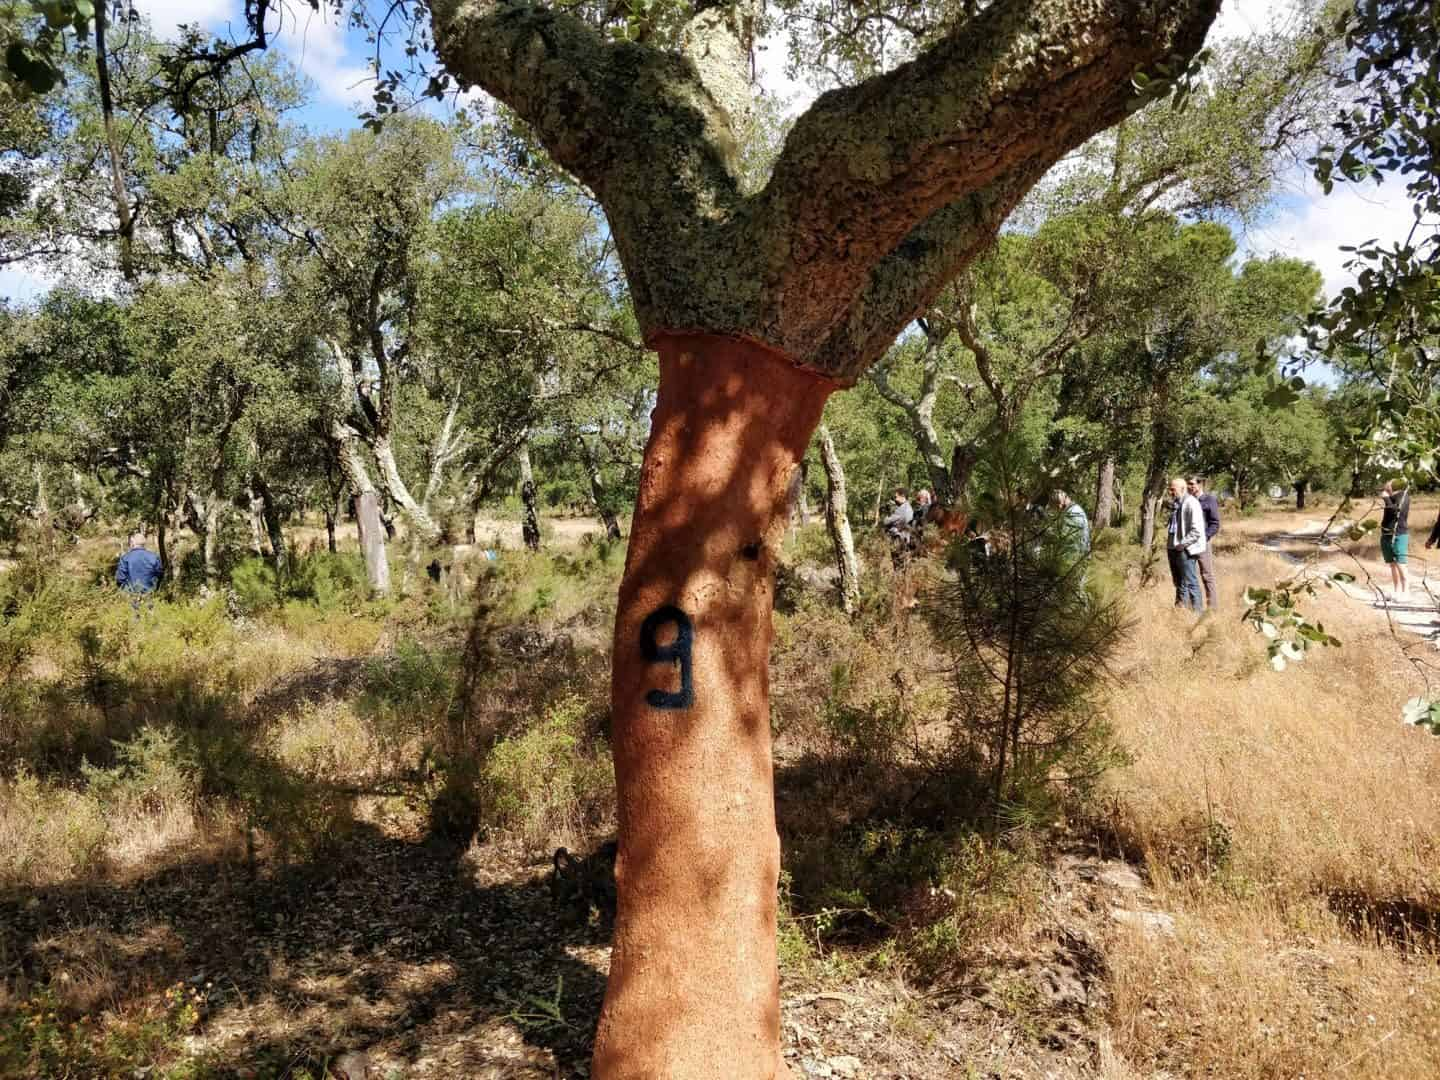 Cork production starts with the harvest in the cork oak forest in Portugal